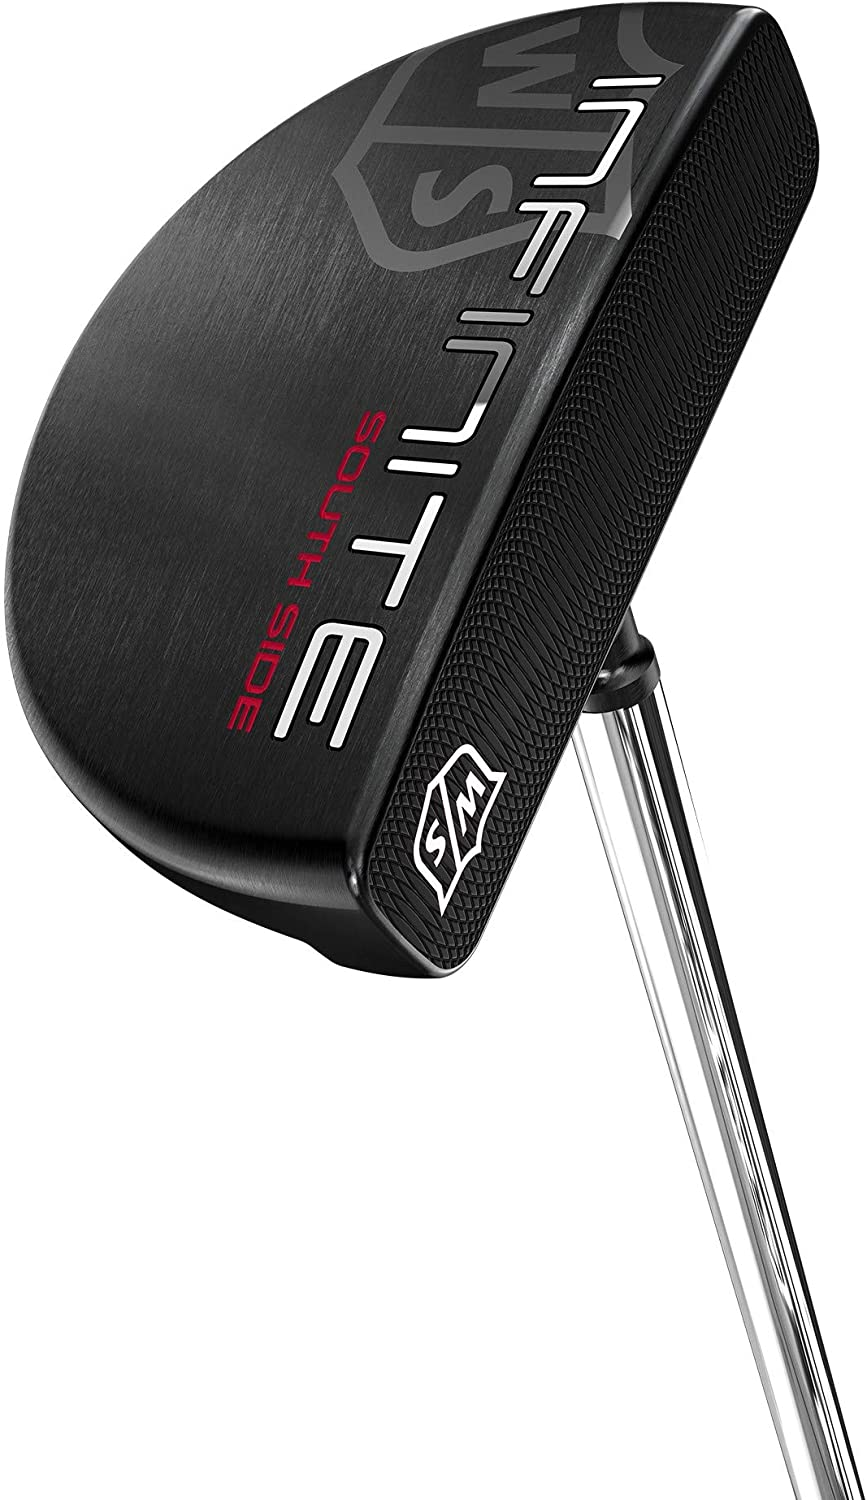 Wilson Staff Infinite Golf Putter, South Side, Right Hand, 34